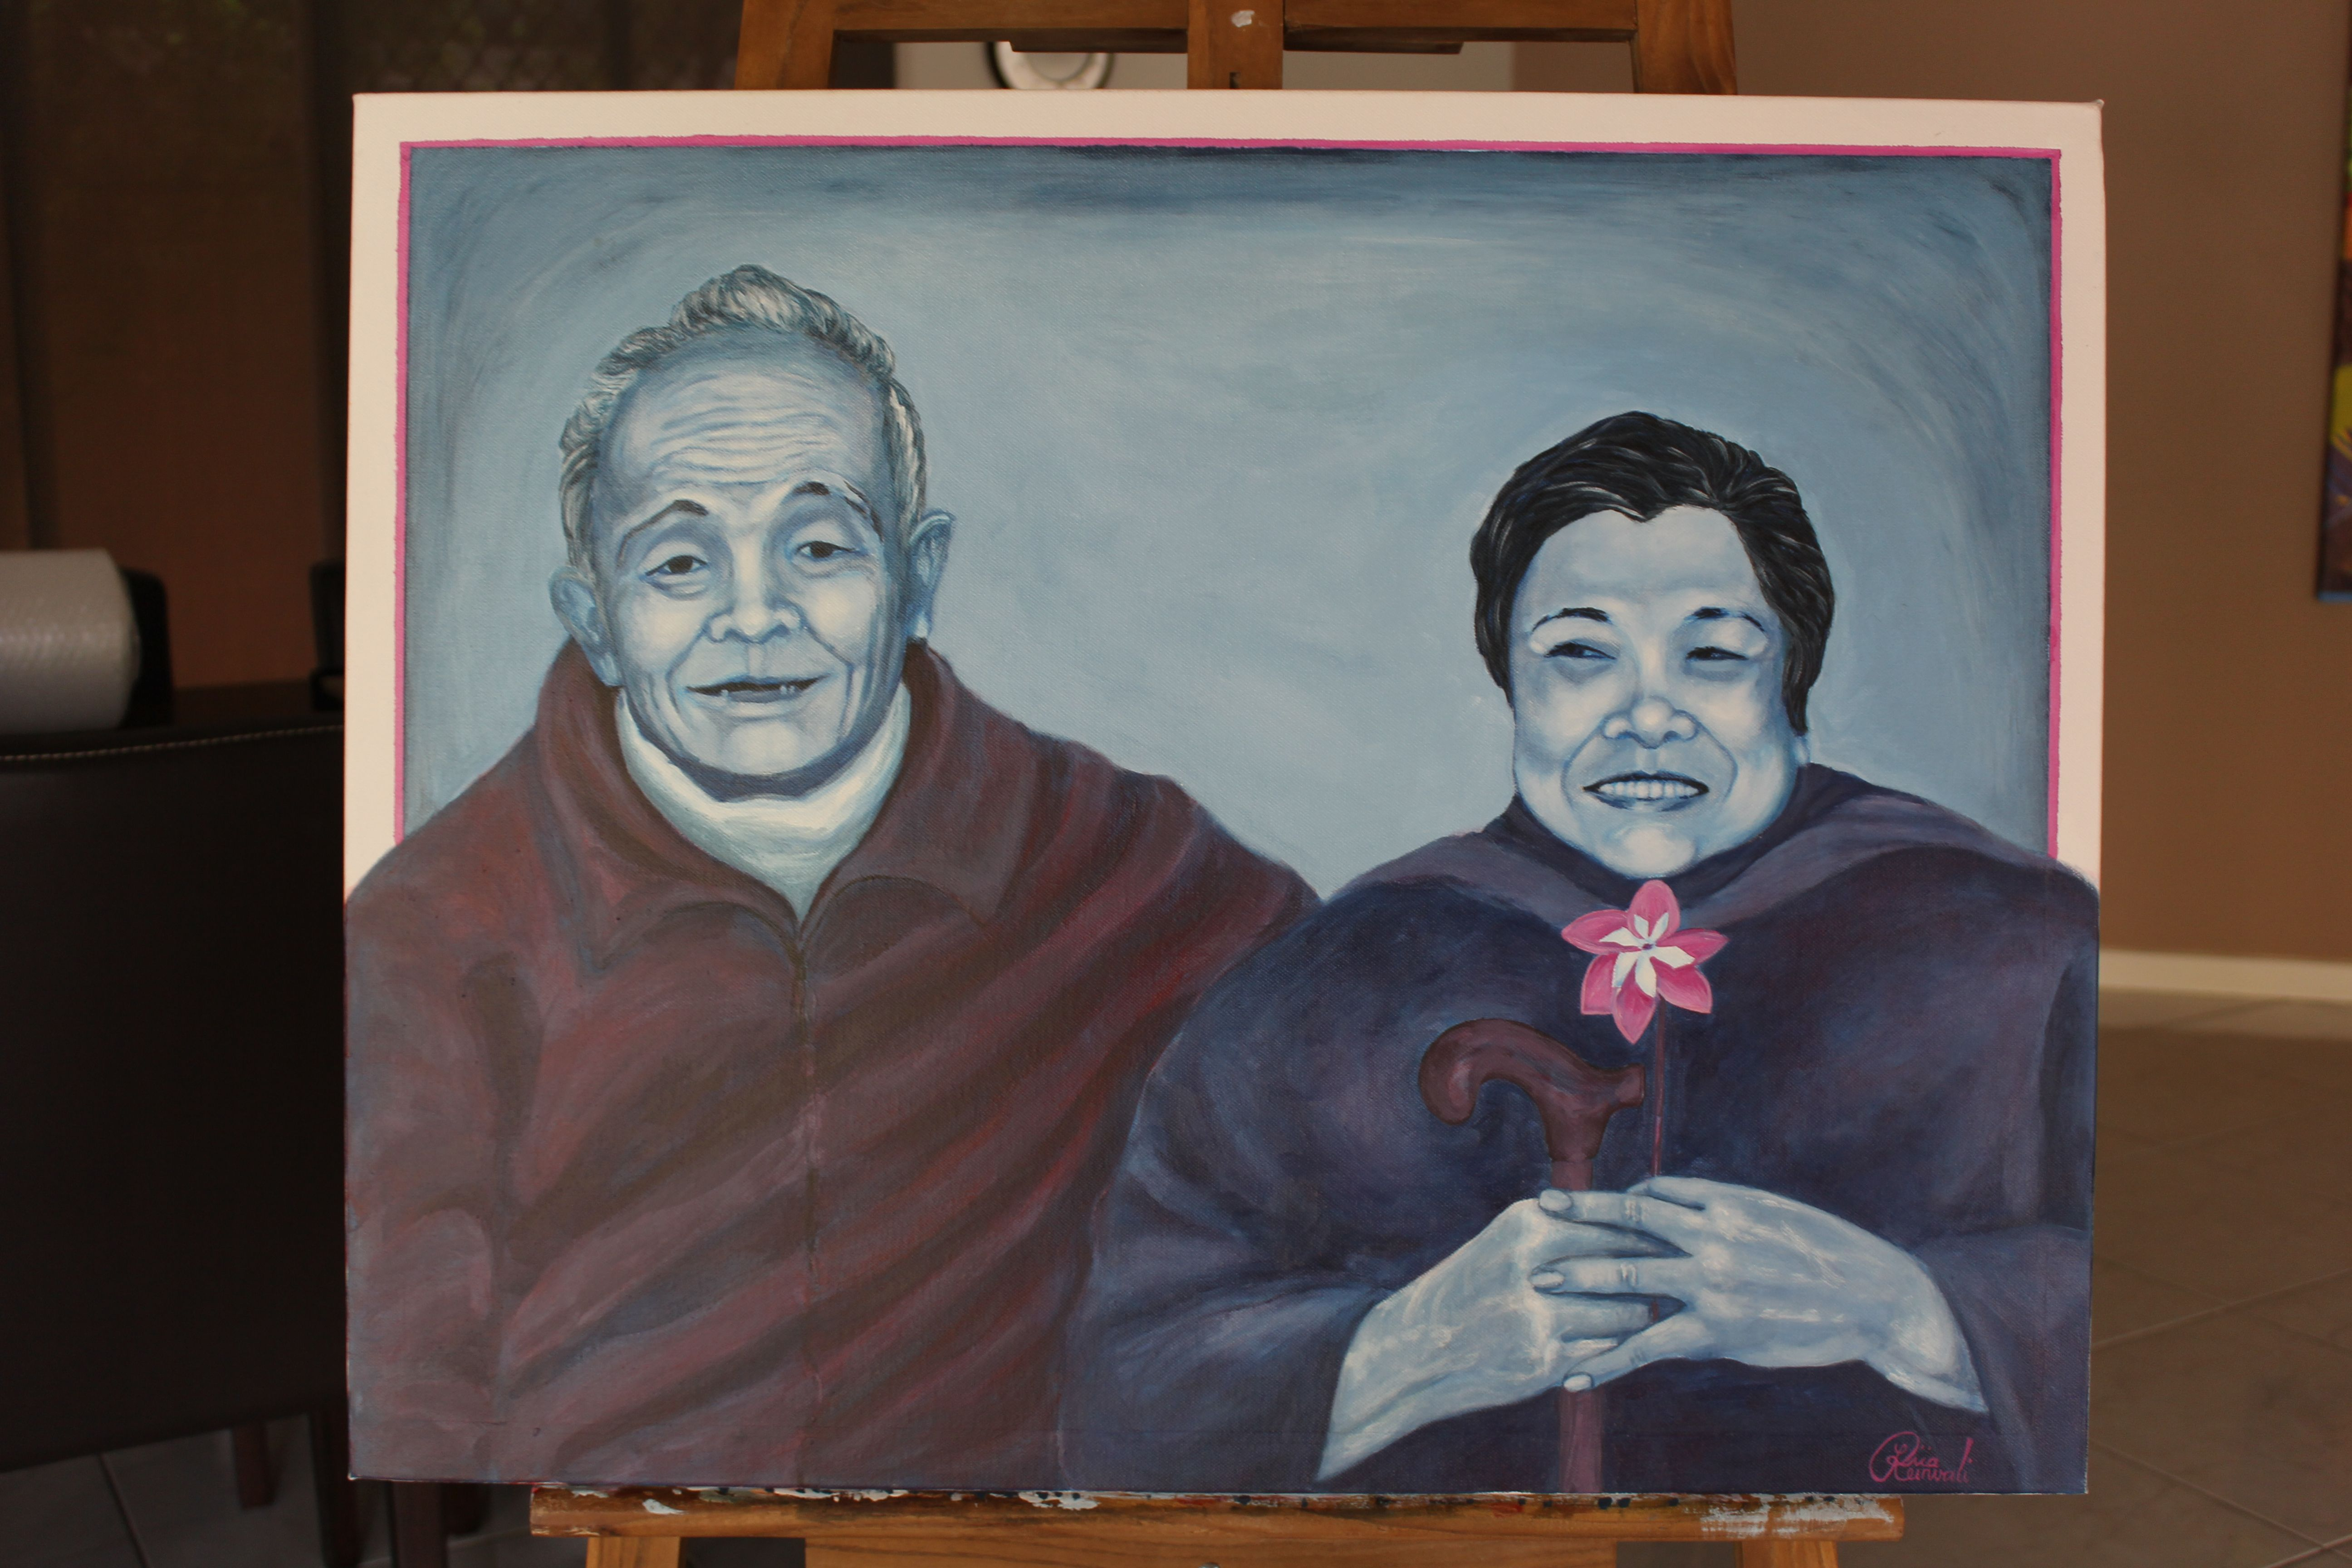 Gift to grandparents - Painted with their personality and characteristics. To enquire about ordering Pop Realism Portrait Painting please contact me: liia@liiart.com.au or www.facebook.com/liiareinvaliart   Photo required via email